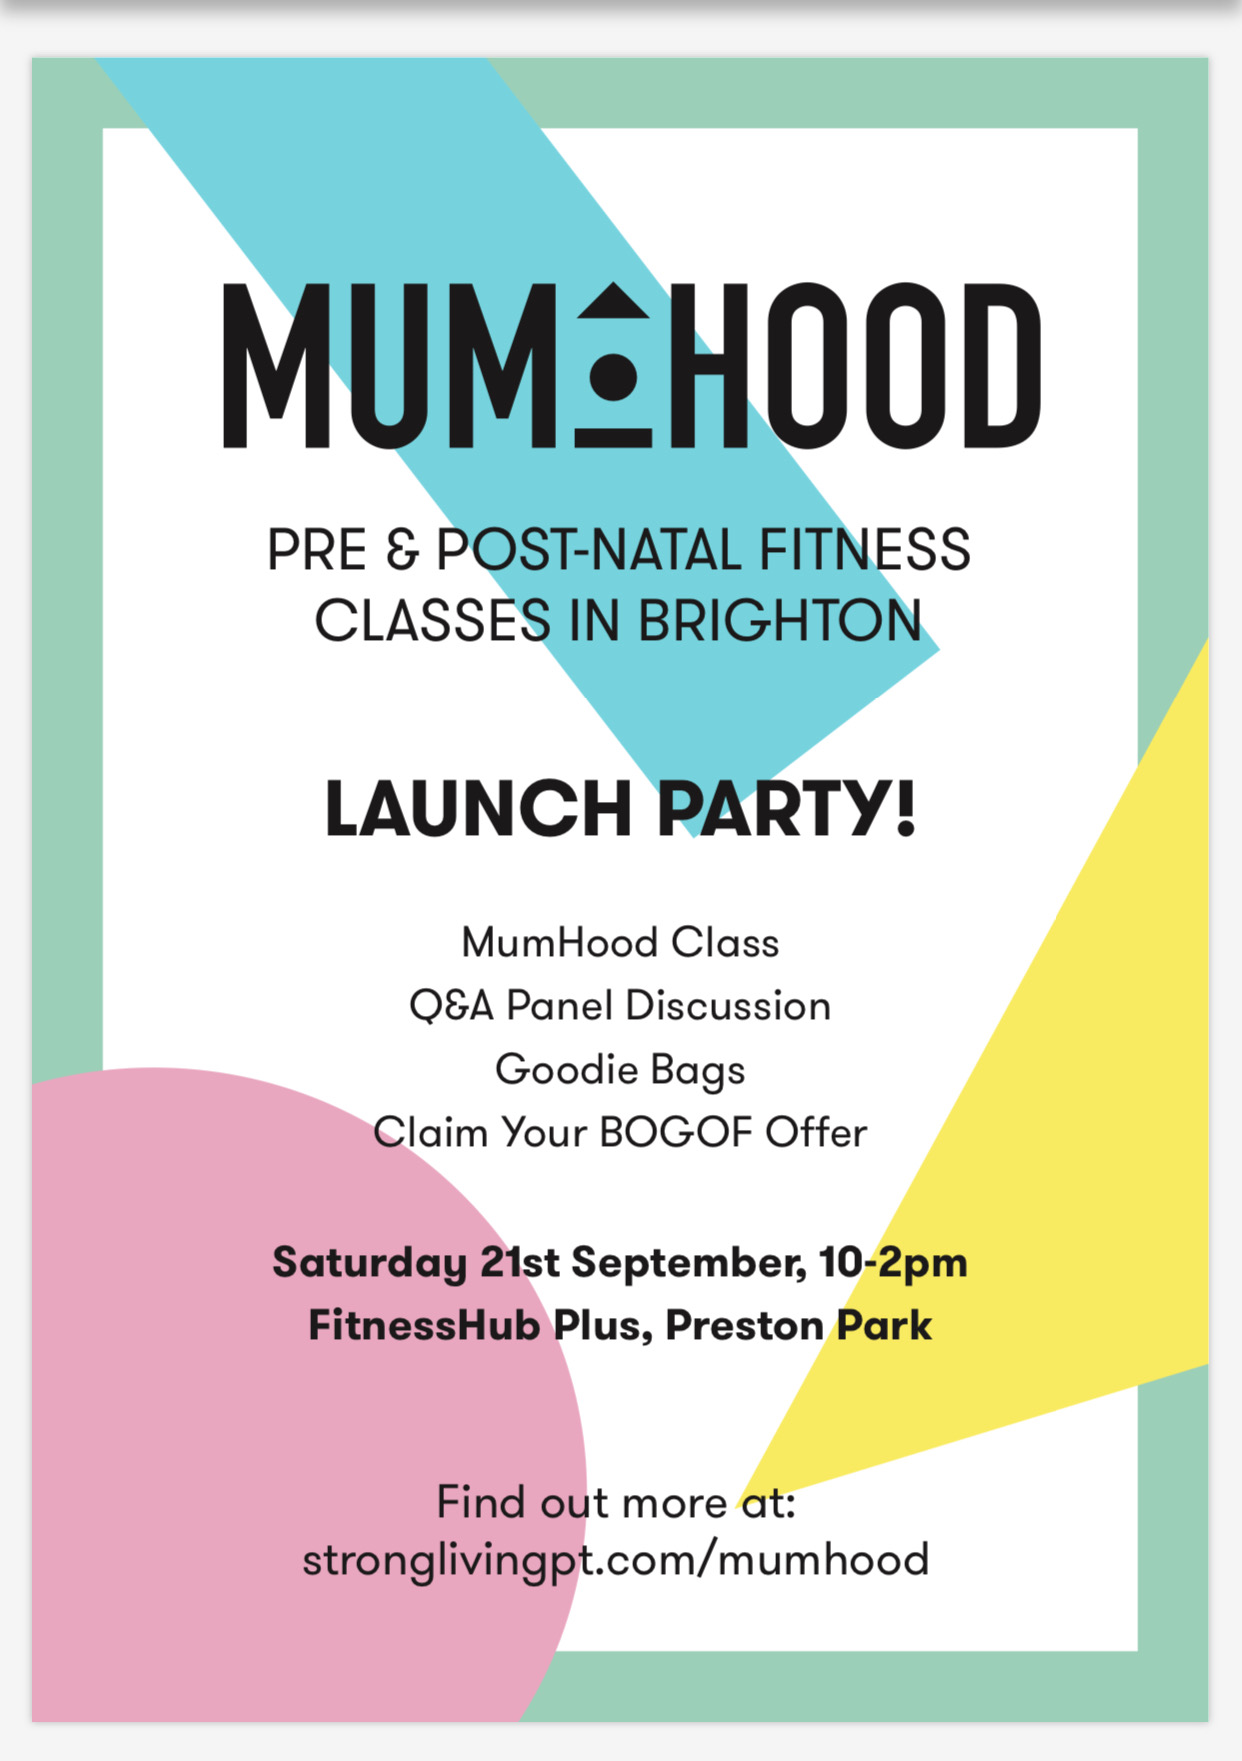 Mumhood launch party